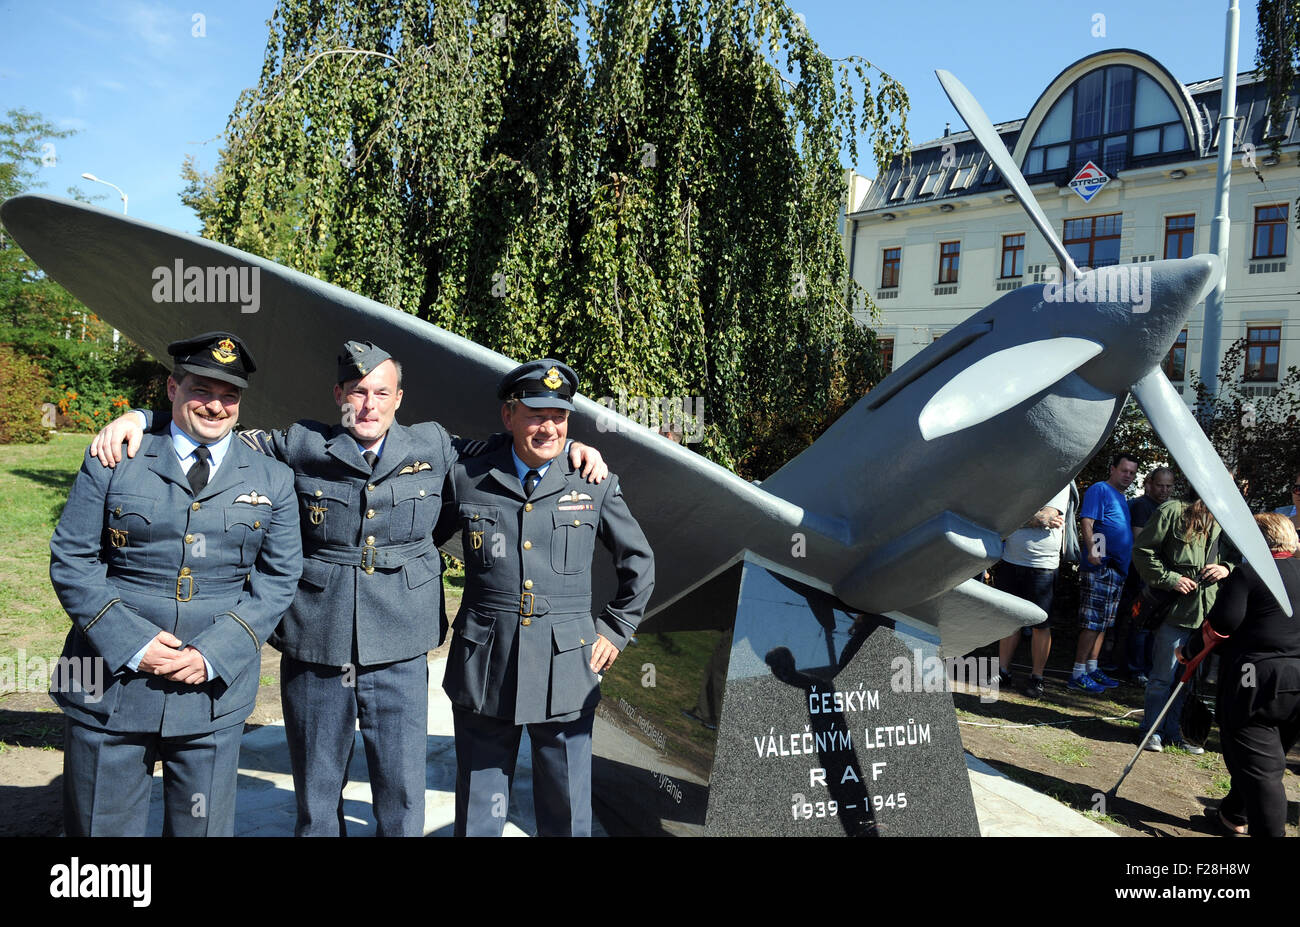 Ceske Budejovice, Czech Republic. 12th Sep, 2015. Members of Czech club of aviation history pose for photo during - Stock Image